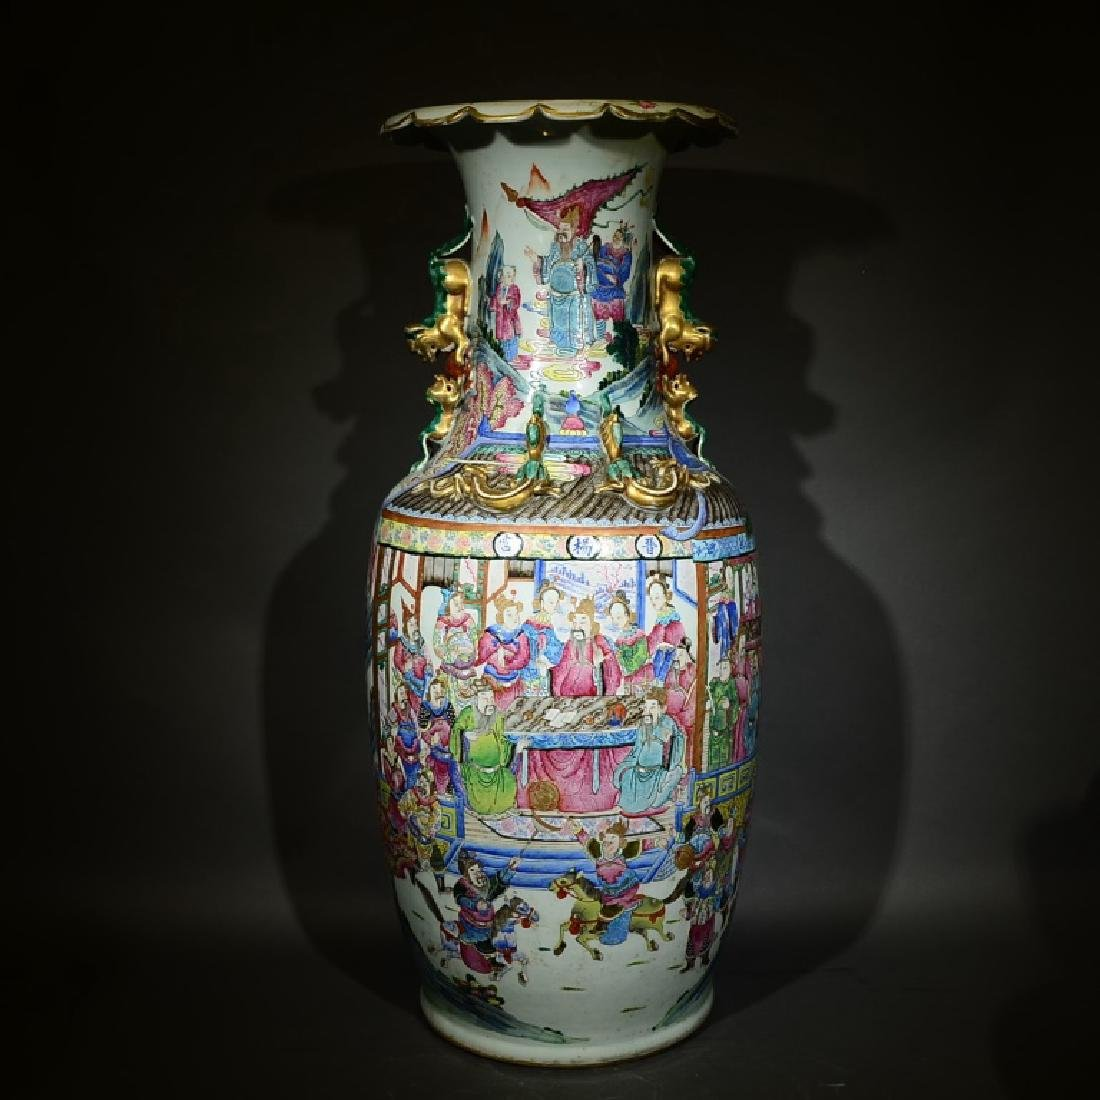 A LARGE FAMILLE ROSE VASE, LATE QING DYNASTY